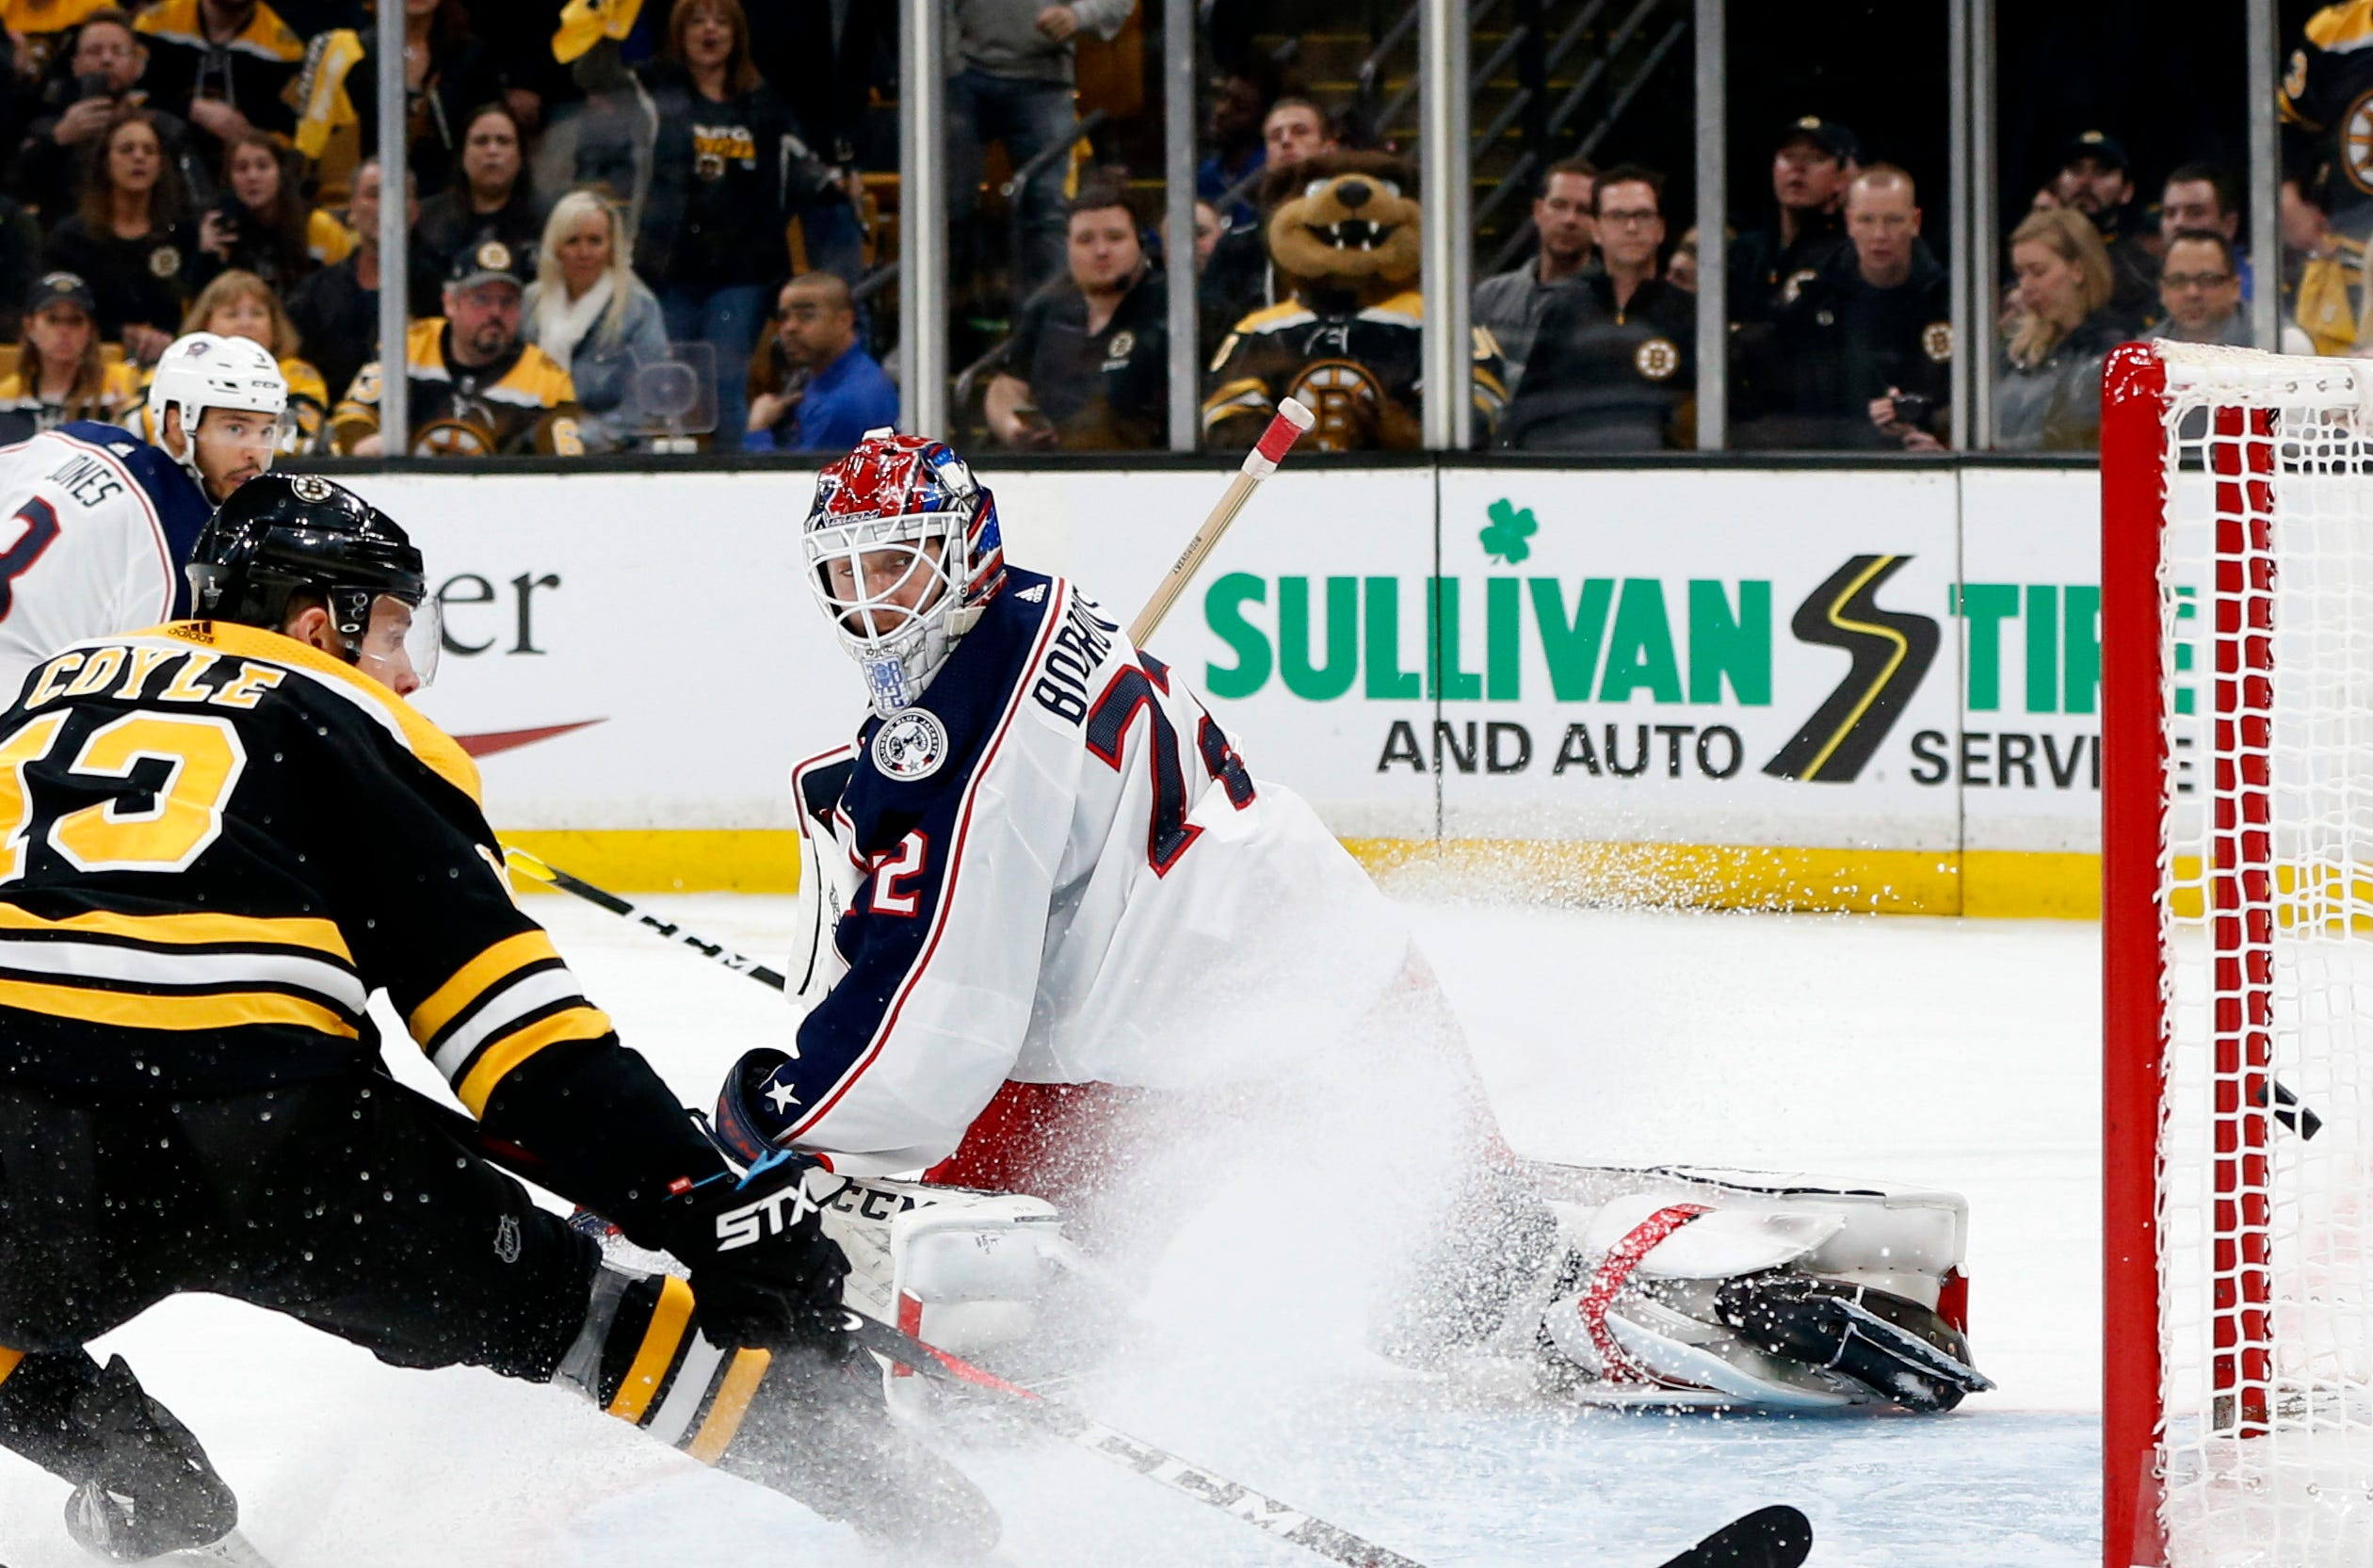 Second round: Bruins center Charlie Coyle scores past Blue Jackets goaltender Sergei Bobrovsky in overtime for a 3-2 win in Game 1.